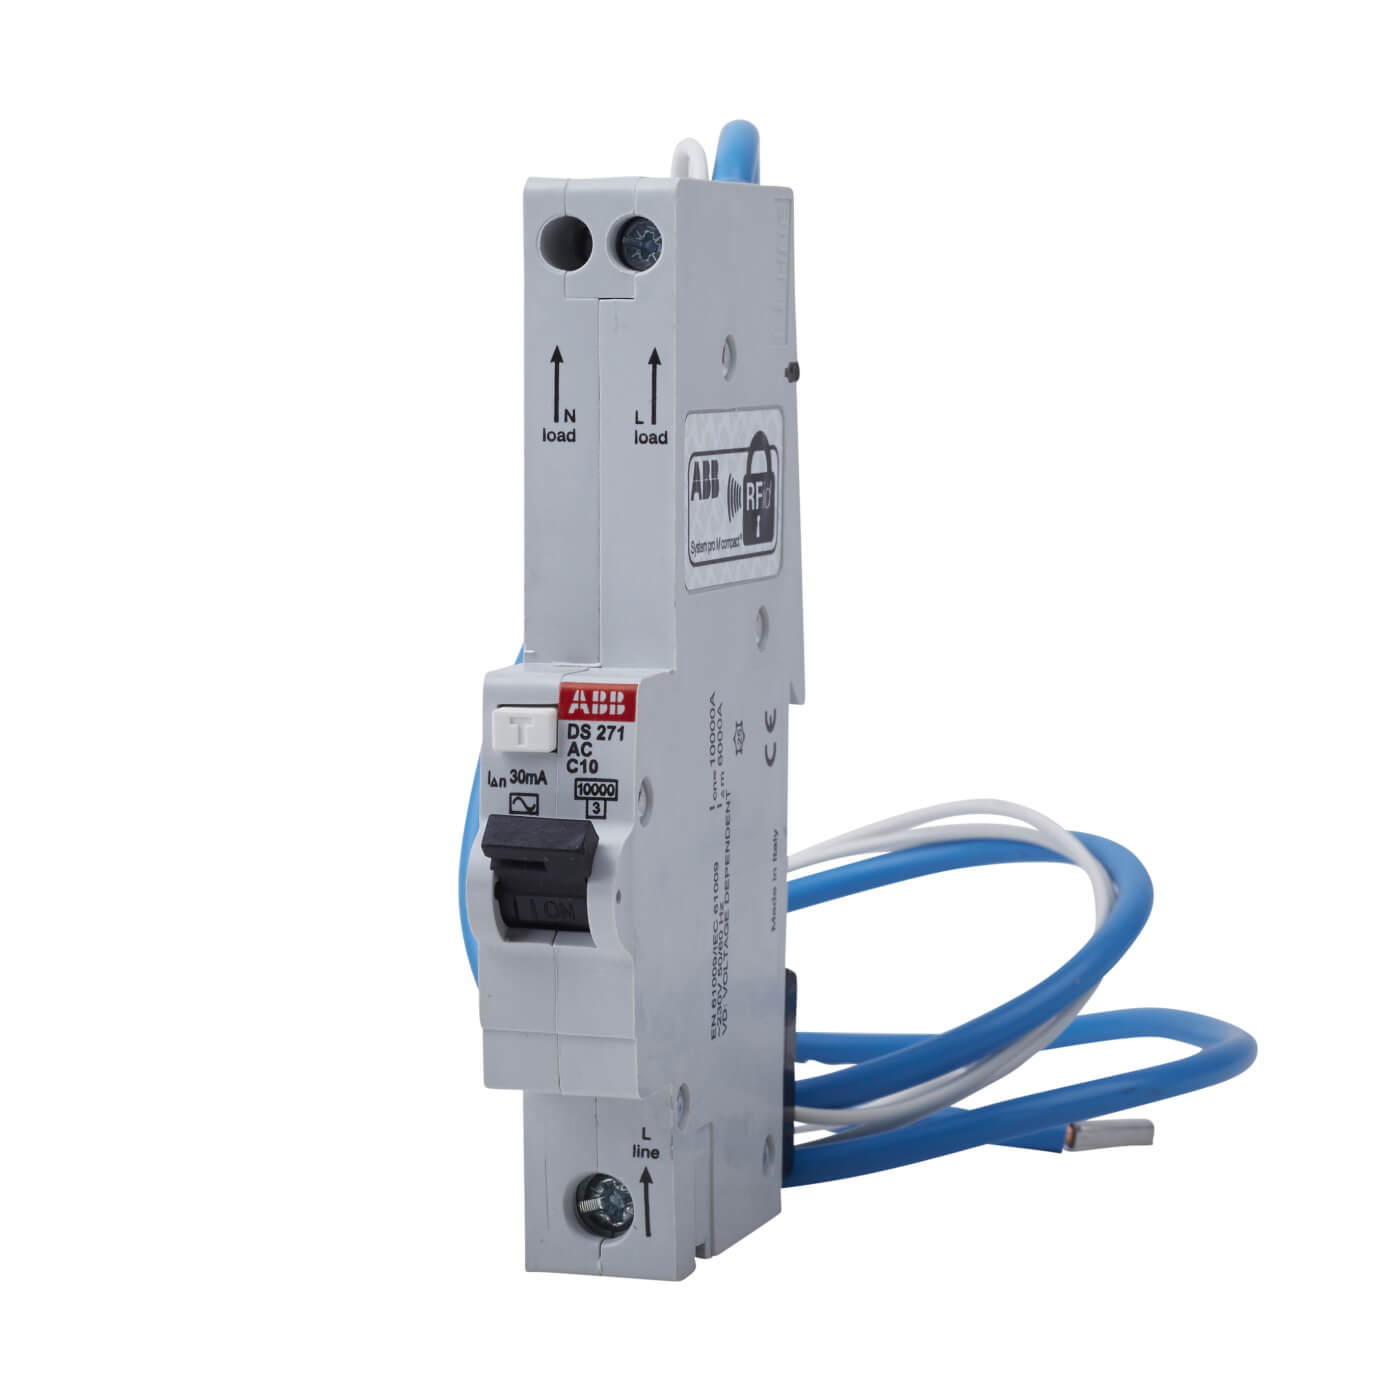 Abb 10a 30ma 10ka 1 Module 3 Phase Rcbo Type C Electricaldirect Wiring Of The Distribution Board With Rcd Single Back